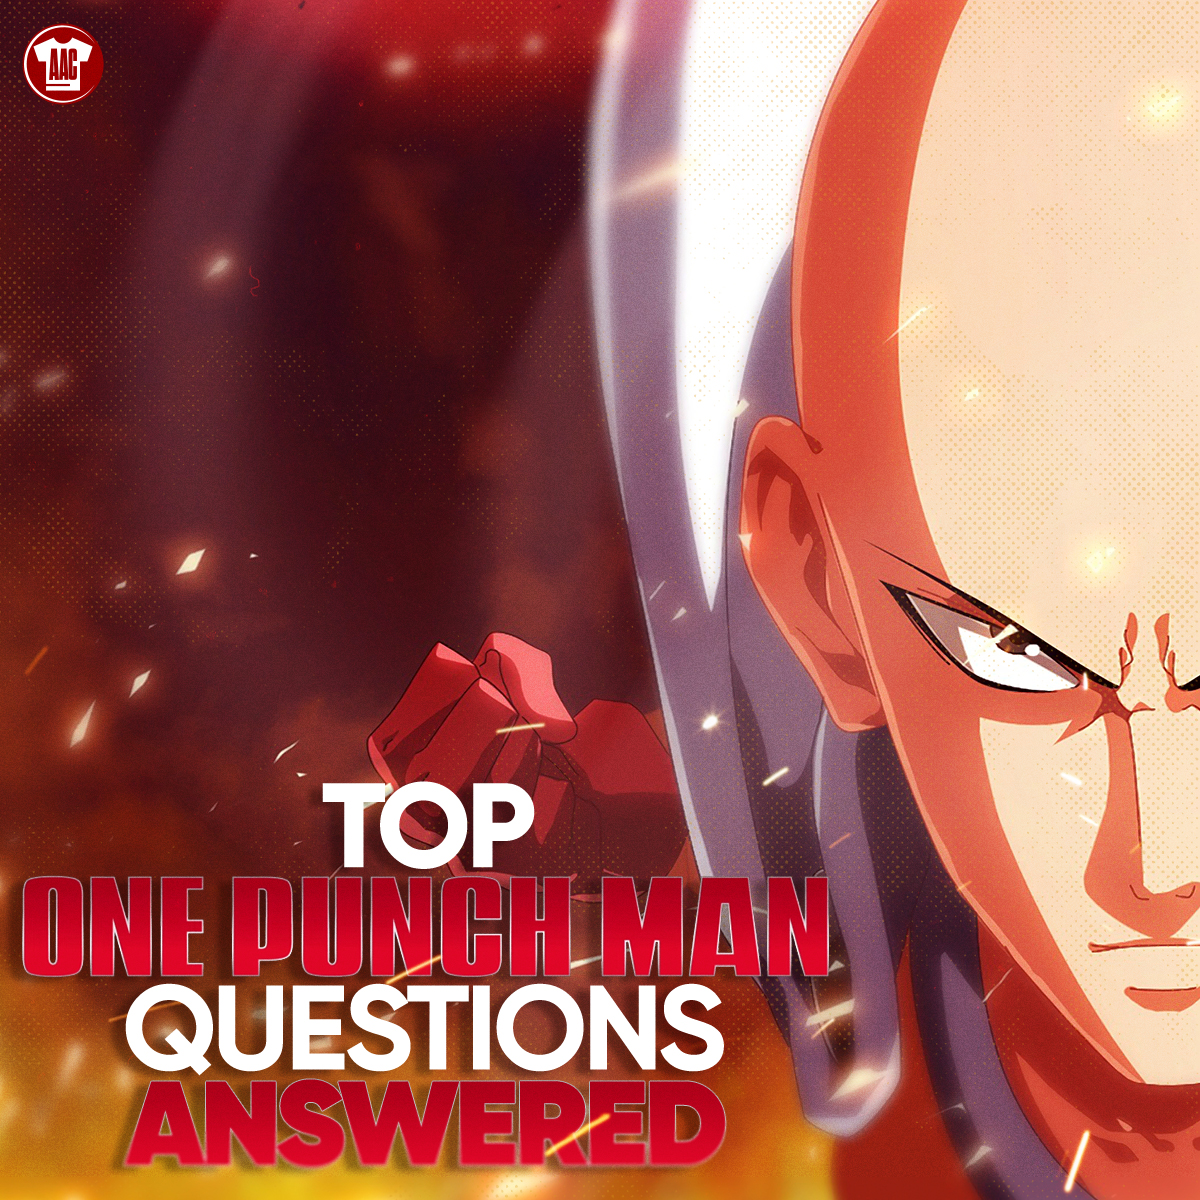 Top One Punch Man Questions Answered